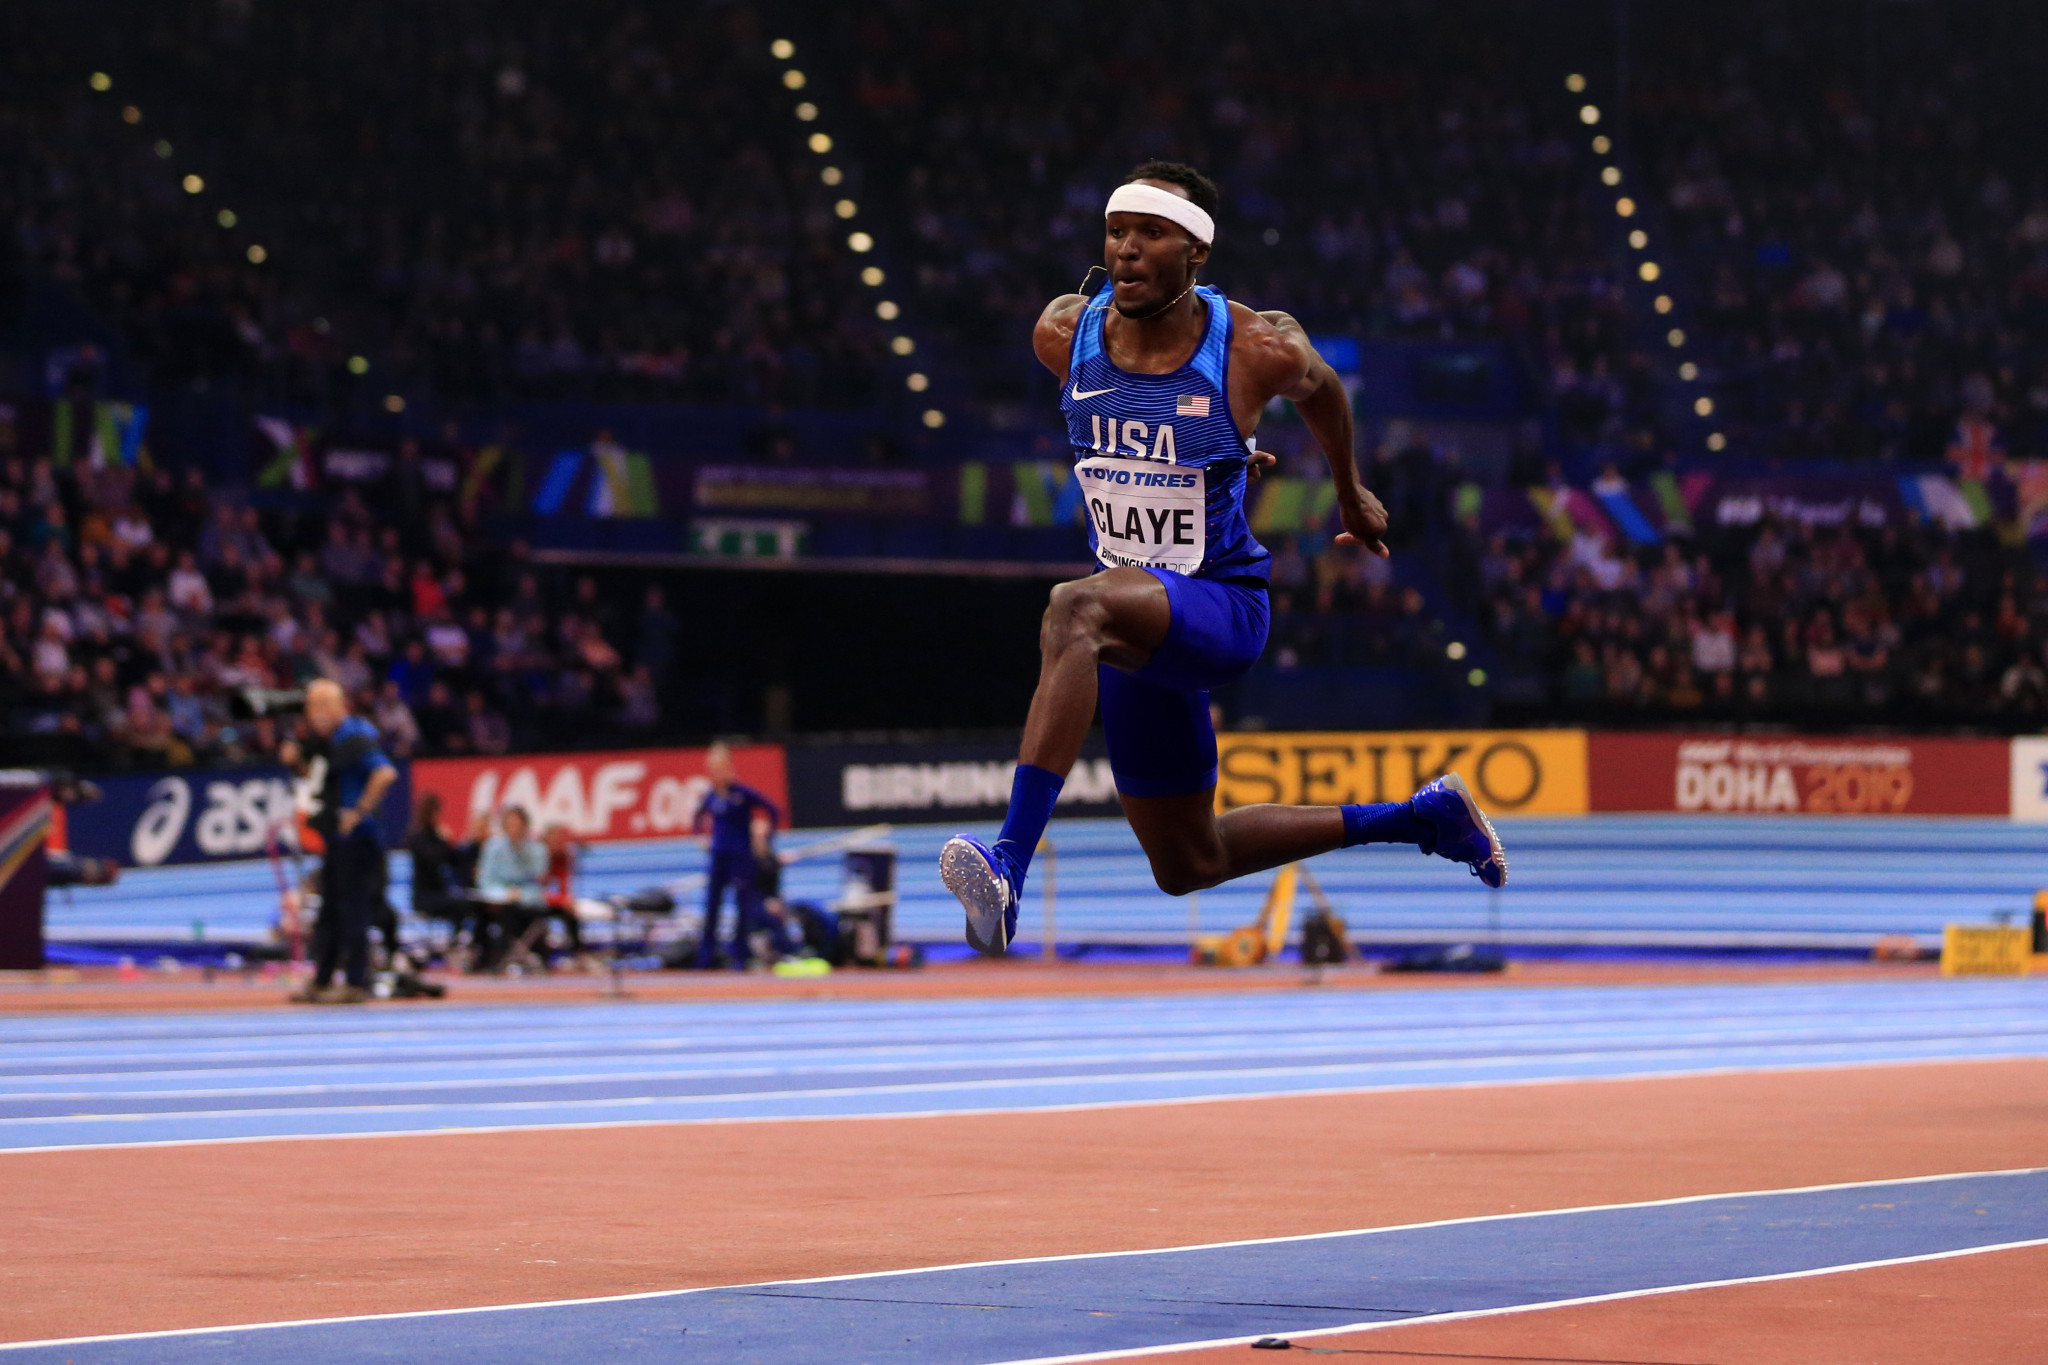 American triple jumper Claye avoids ban over positive clenbuterol test